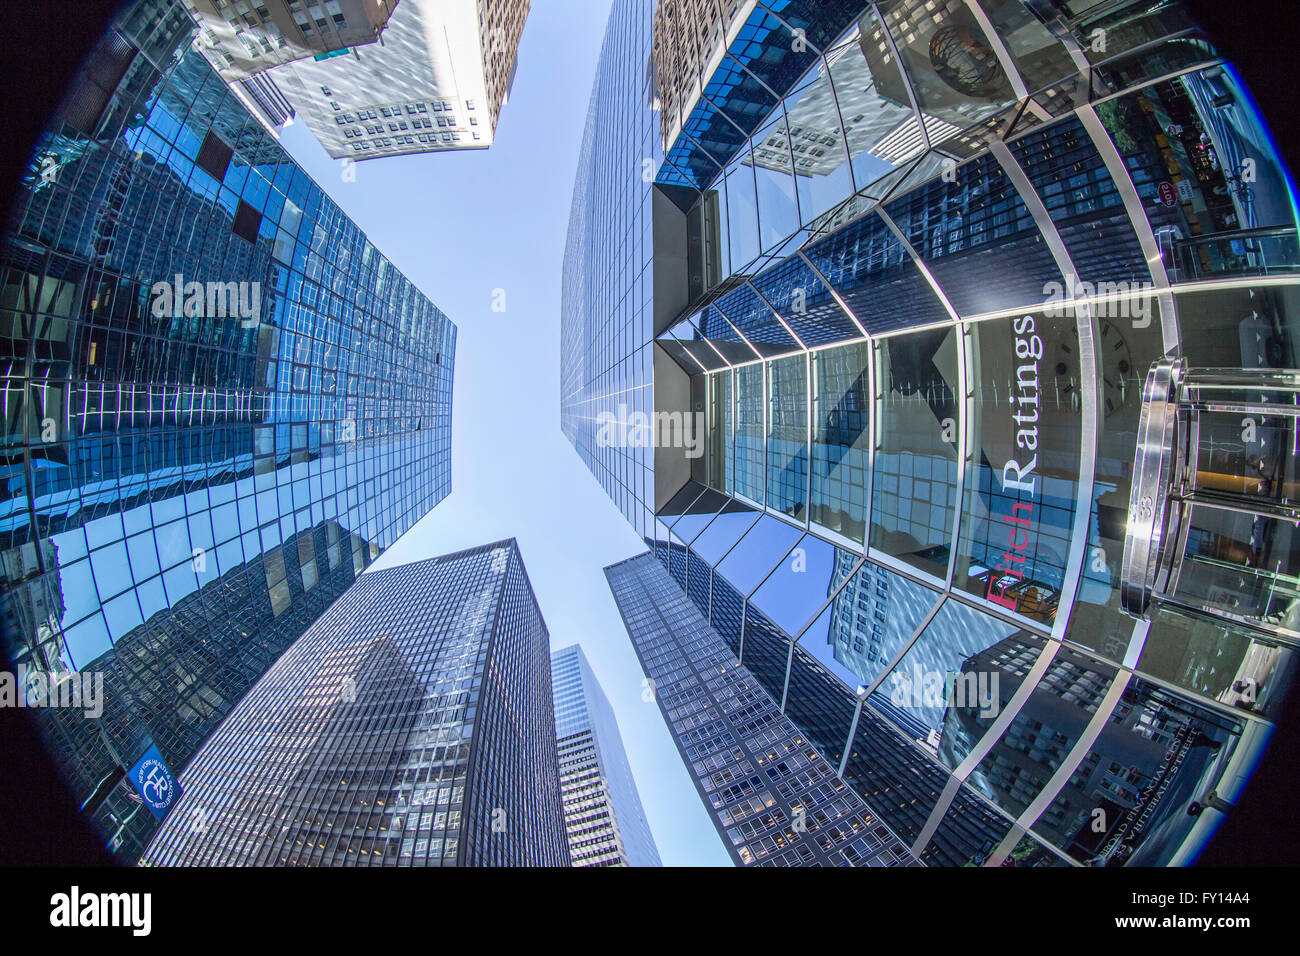 Headquarter Fitch Ratings Manhattan, Financial District, NYC - Stock Image